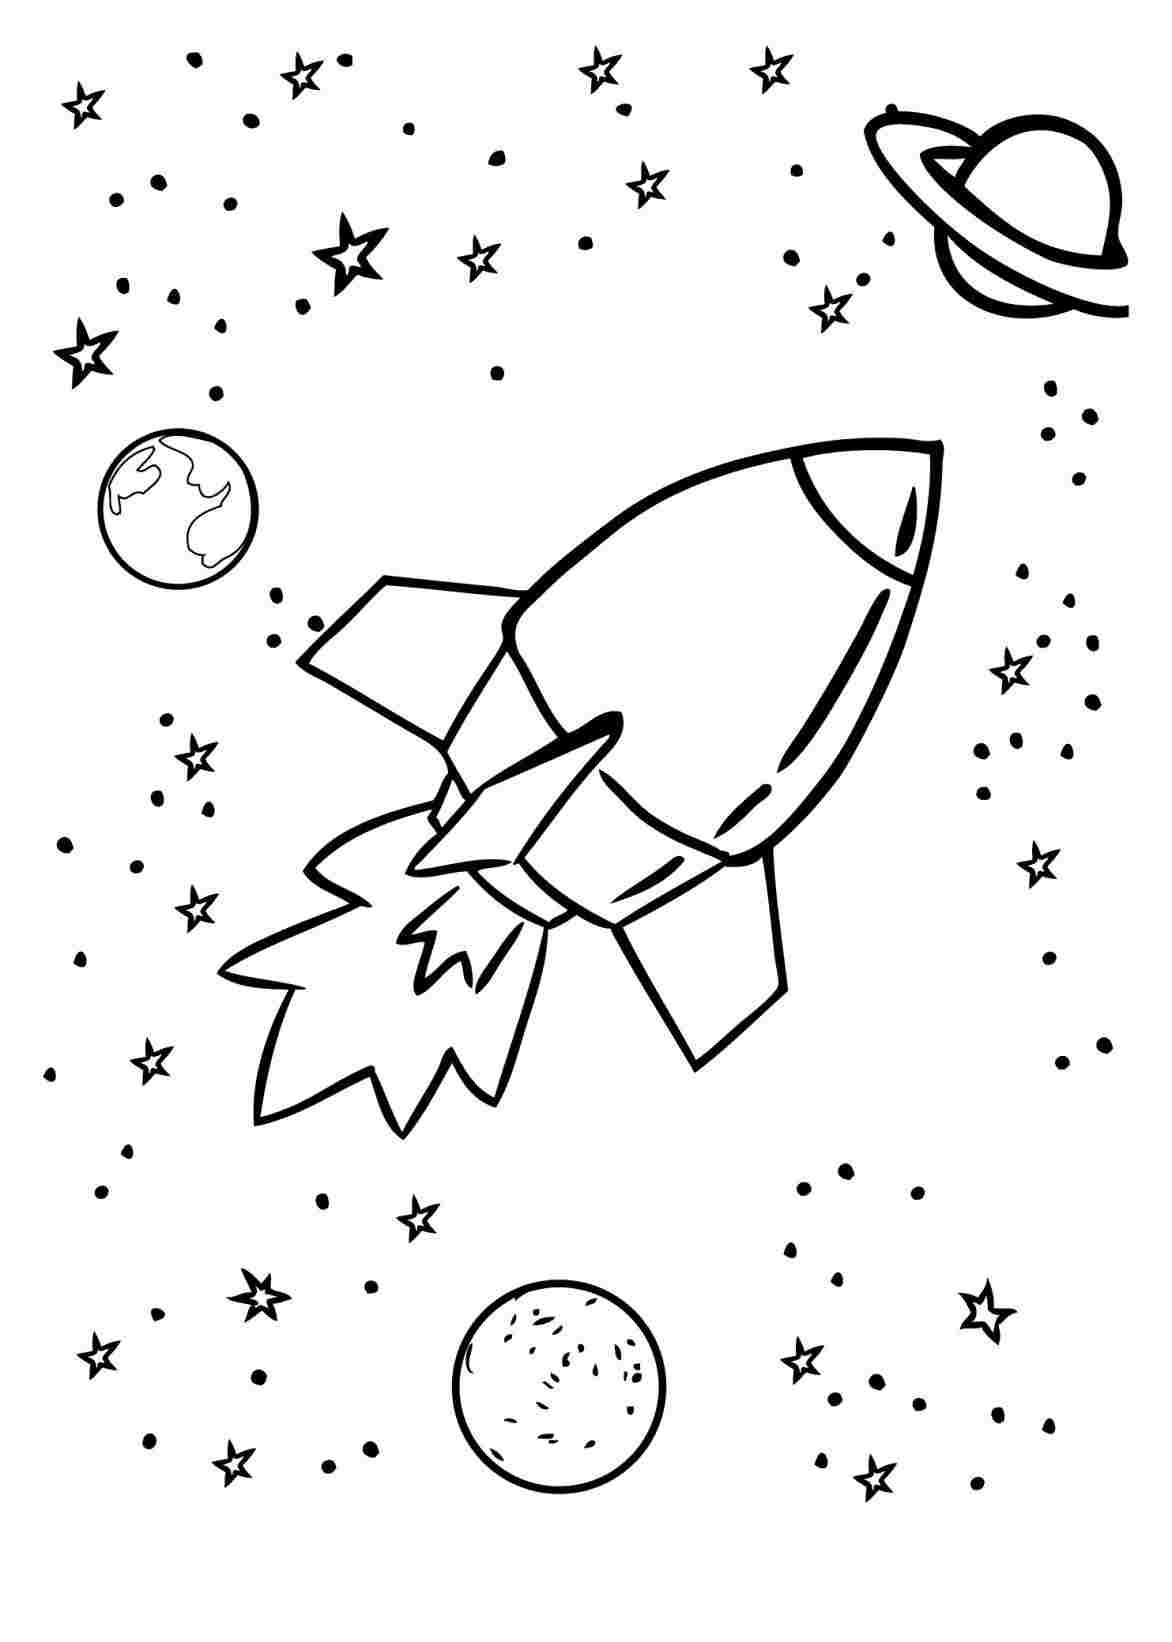 Rocket Drawing For Kids At Paintingvalley